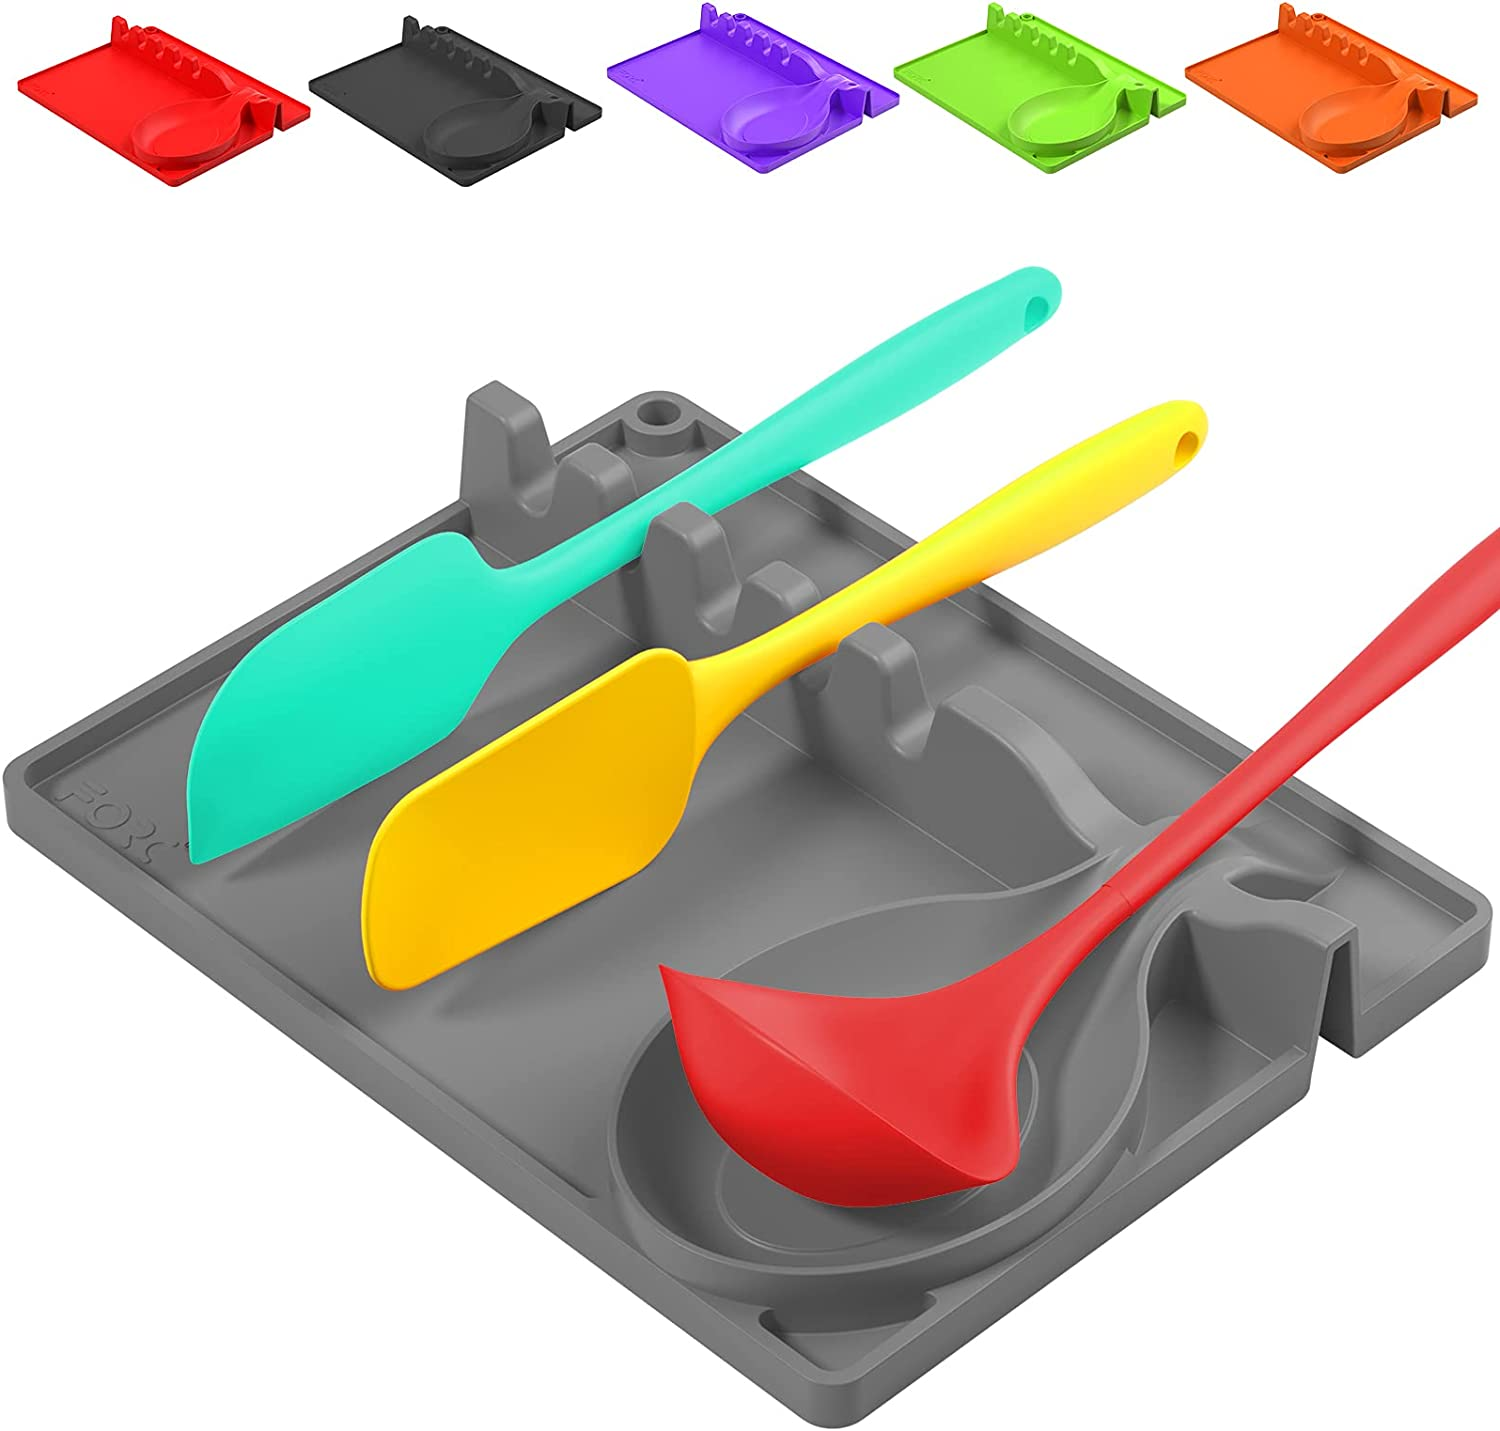 Ladle /& Spoon Holder Kitchen Utensil Rest with Drip Pad Heat-Resistant Novsix Silicone Soup Spoon Holder 2 Pack BPA-Free Spoon Rest /& Spoon Holder for Stove Top